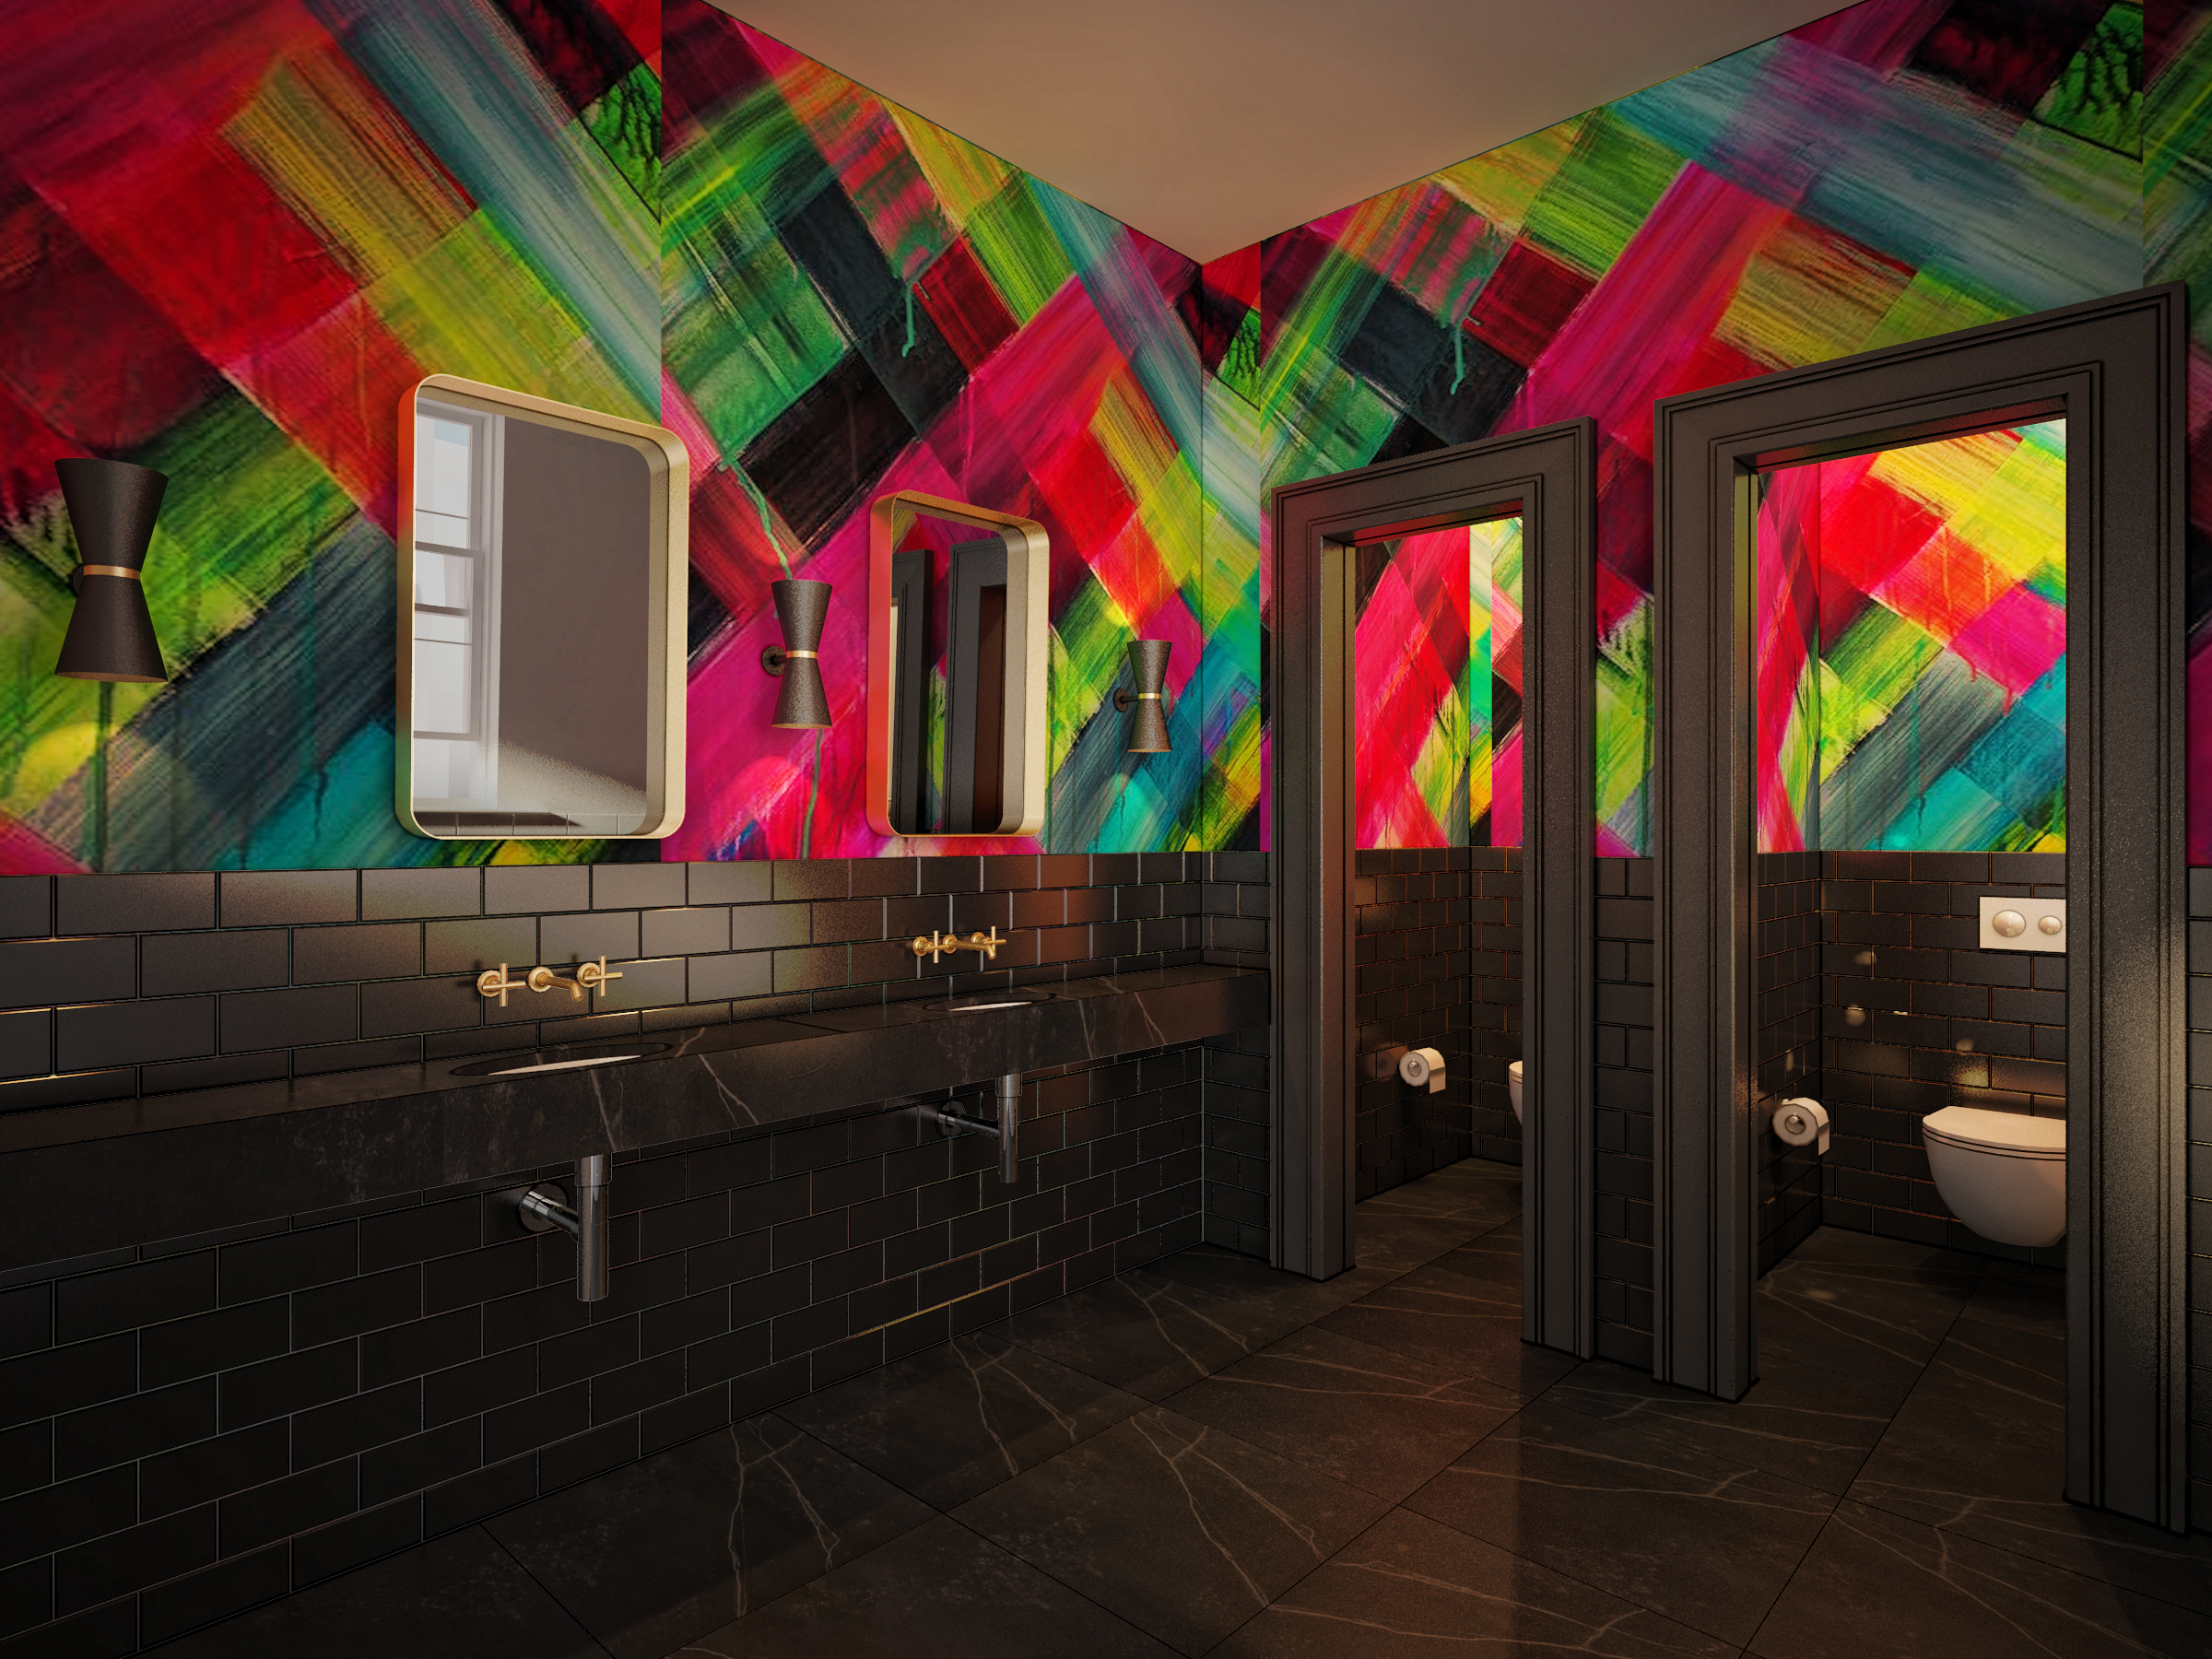 Iconic headquarters: Even bathrooms can express vibrant maximalism.